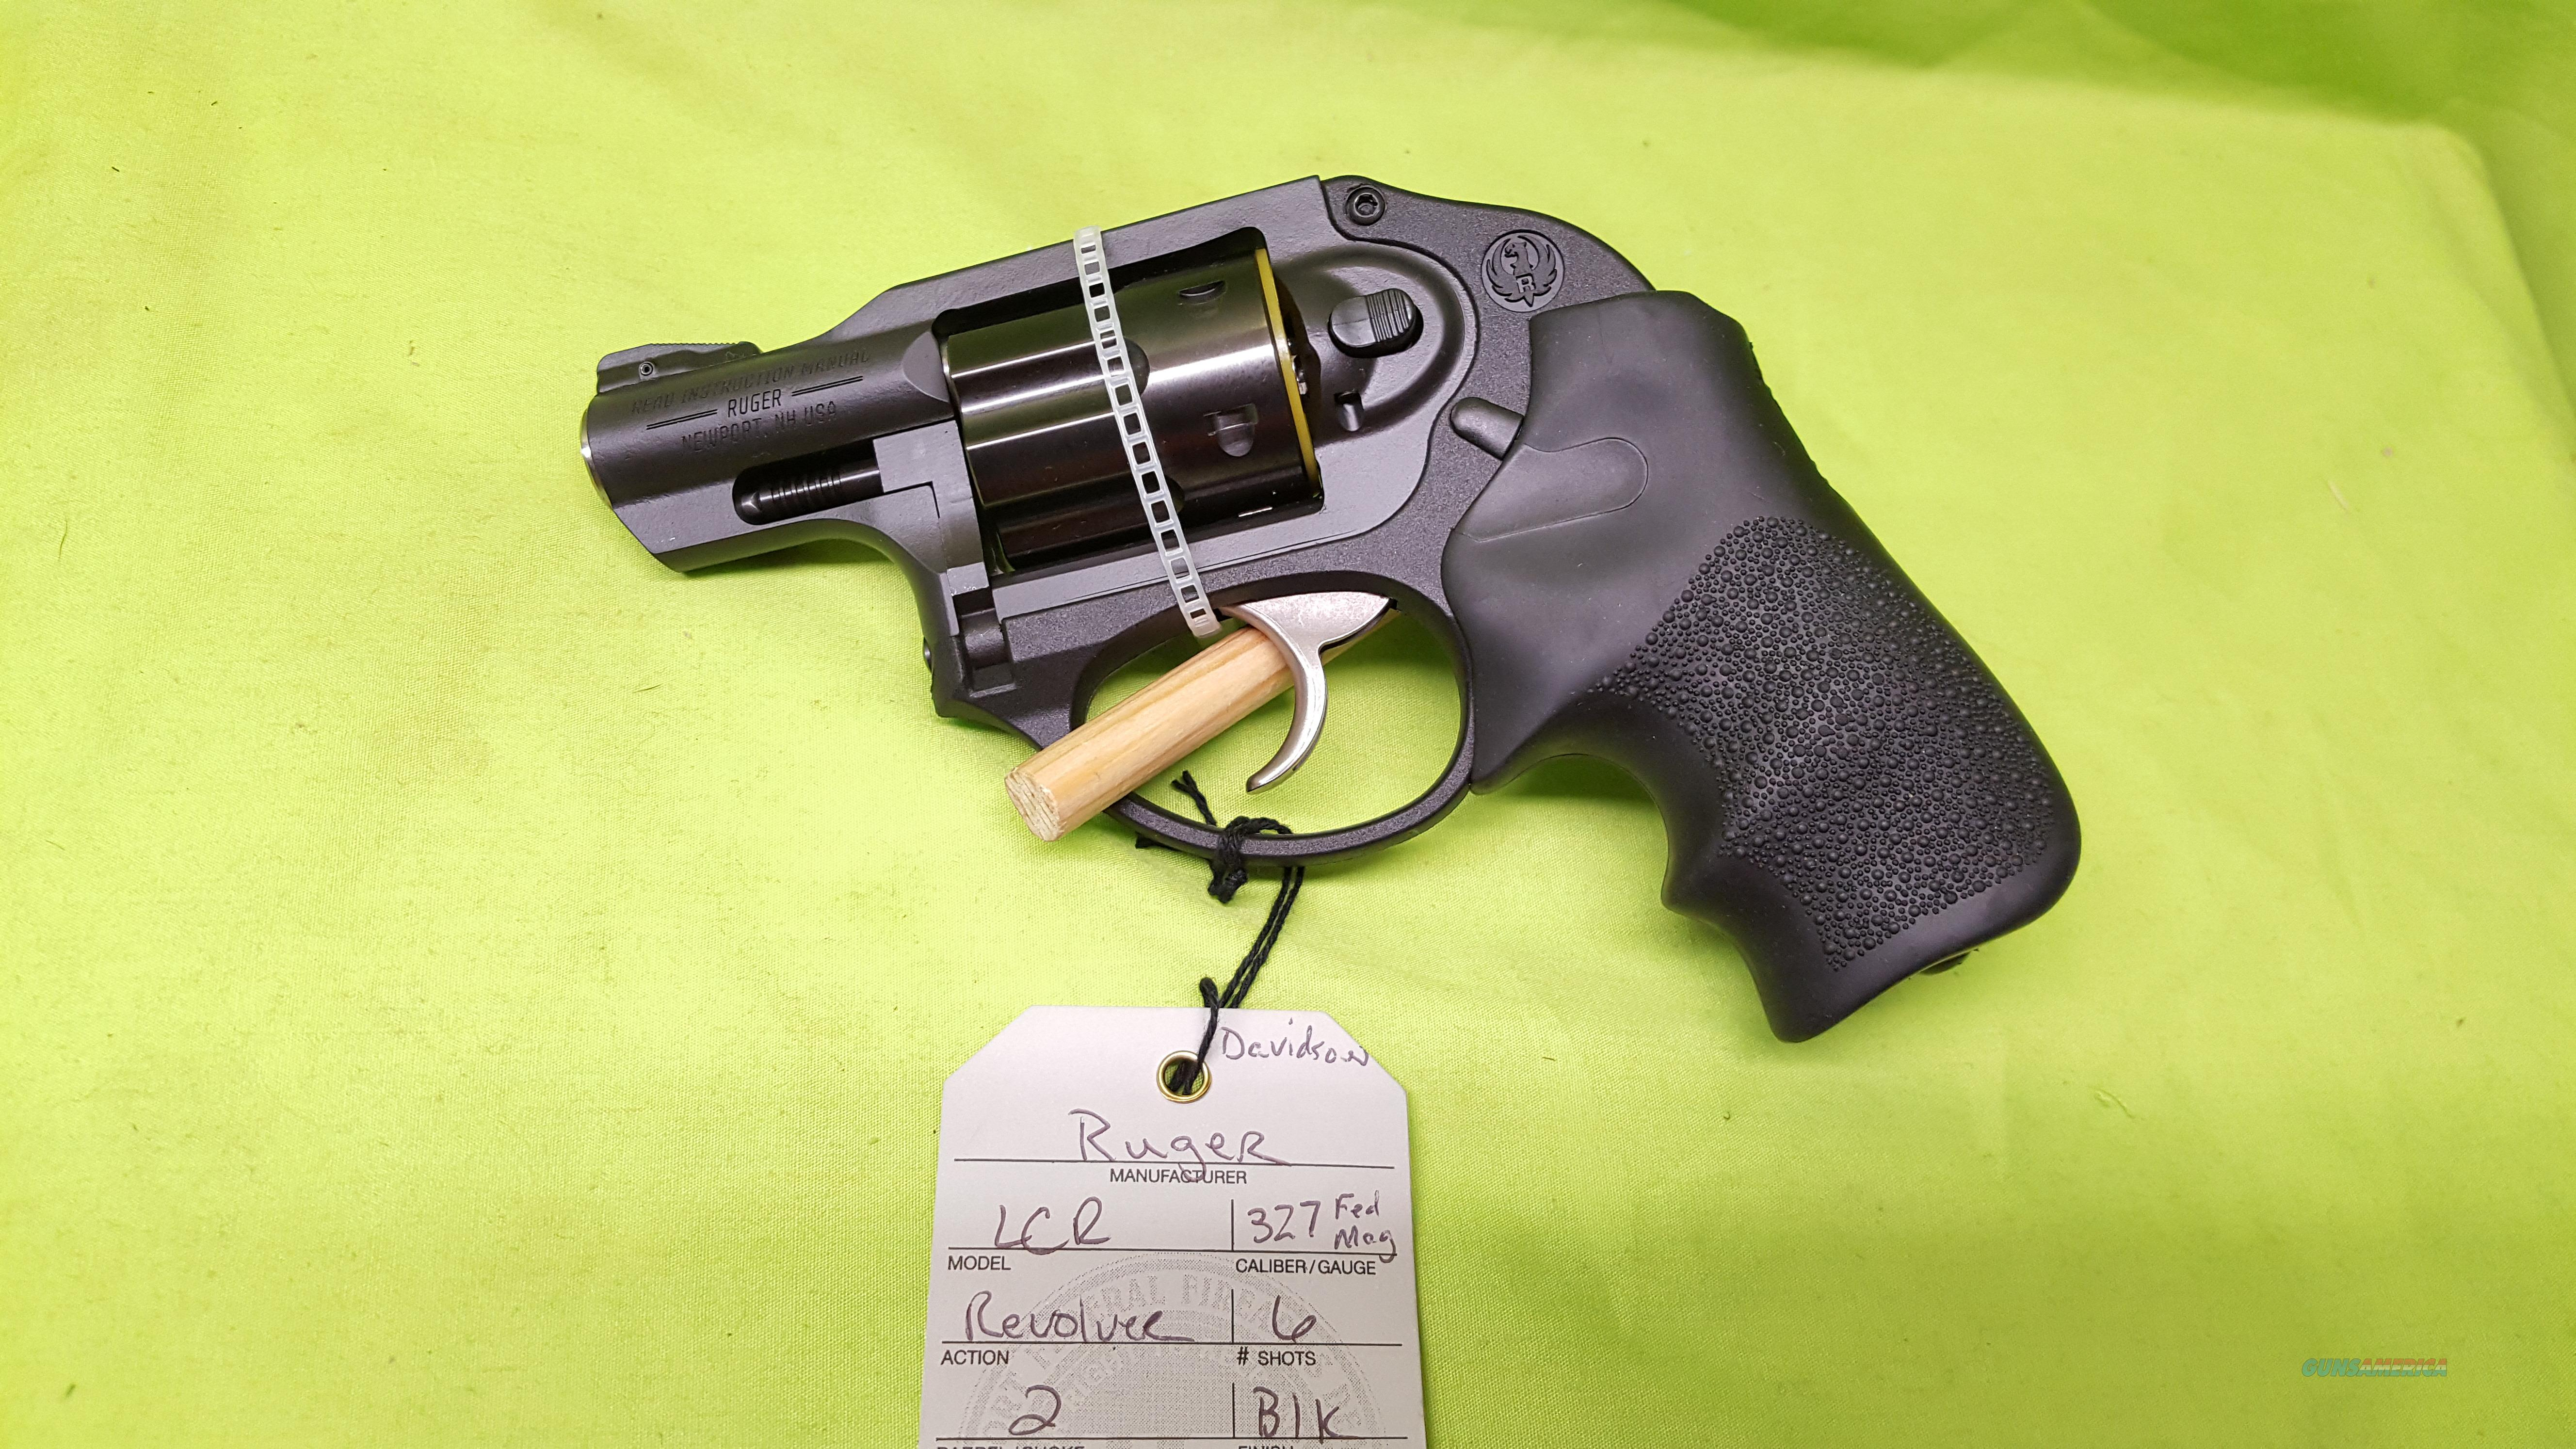 RUGER LCR 327 327FED REVOLVER 6 SHOT 5452  Guns > Pistols > Ruger Double Action Revolver > LCR